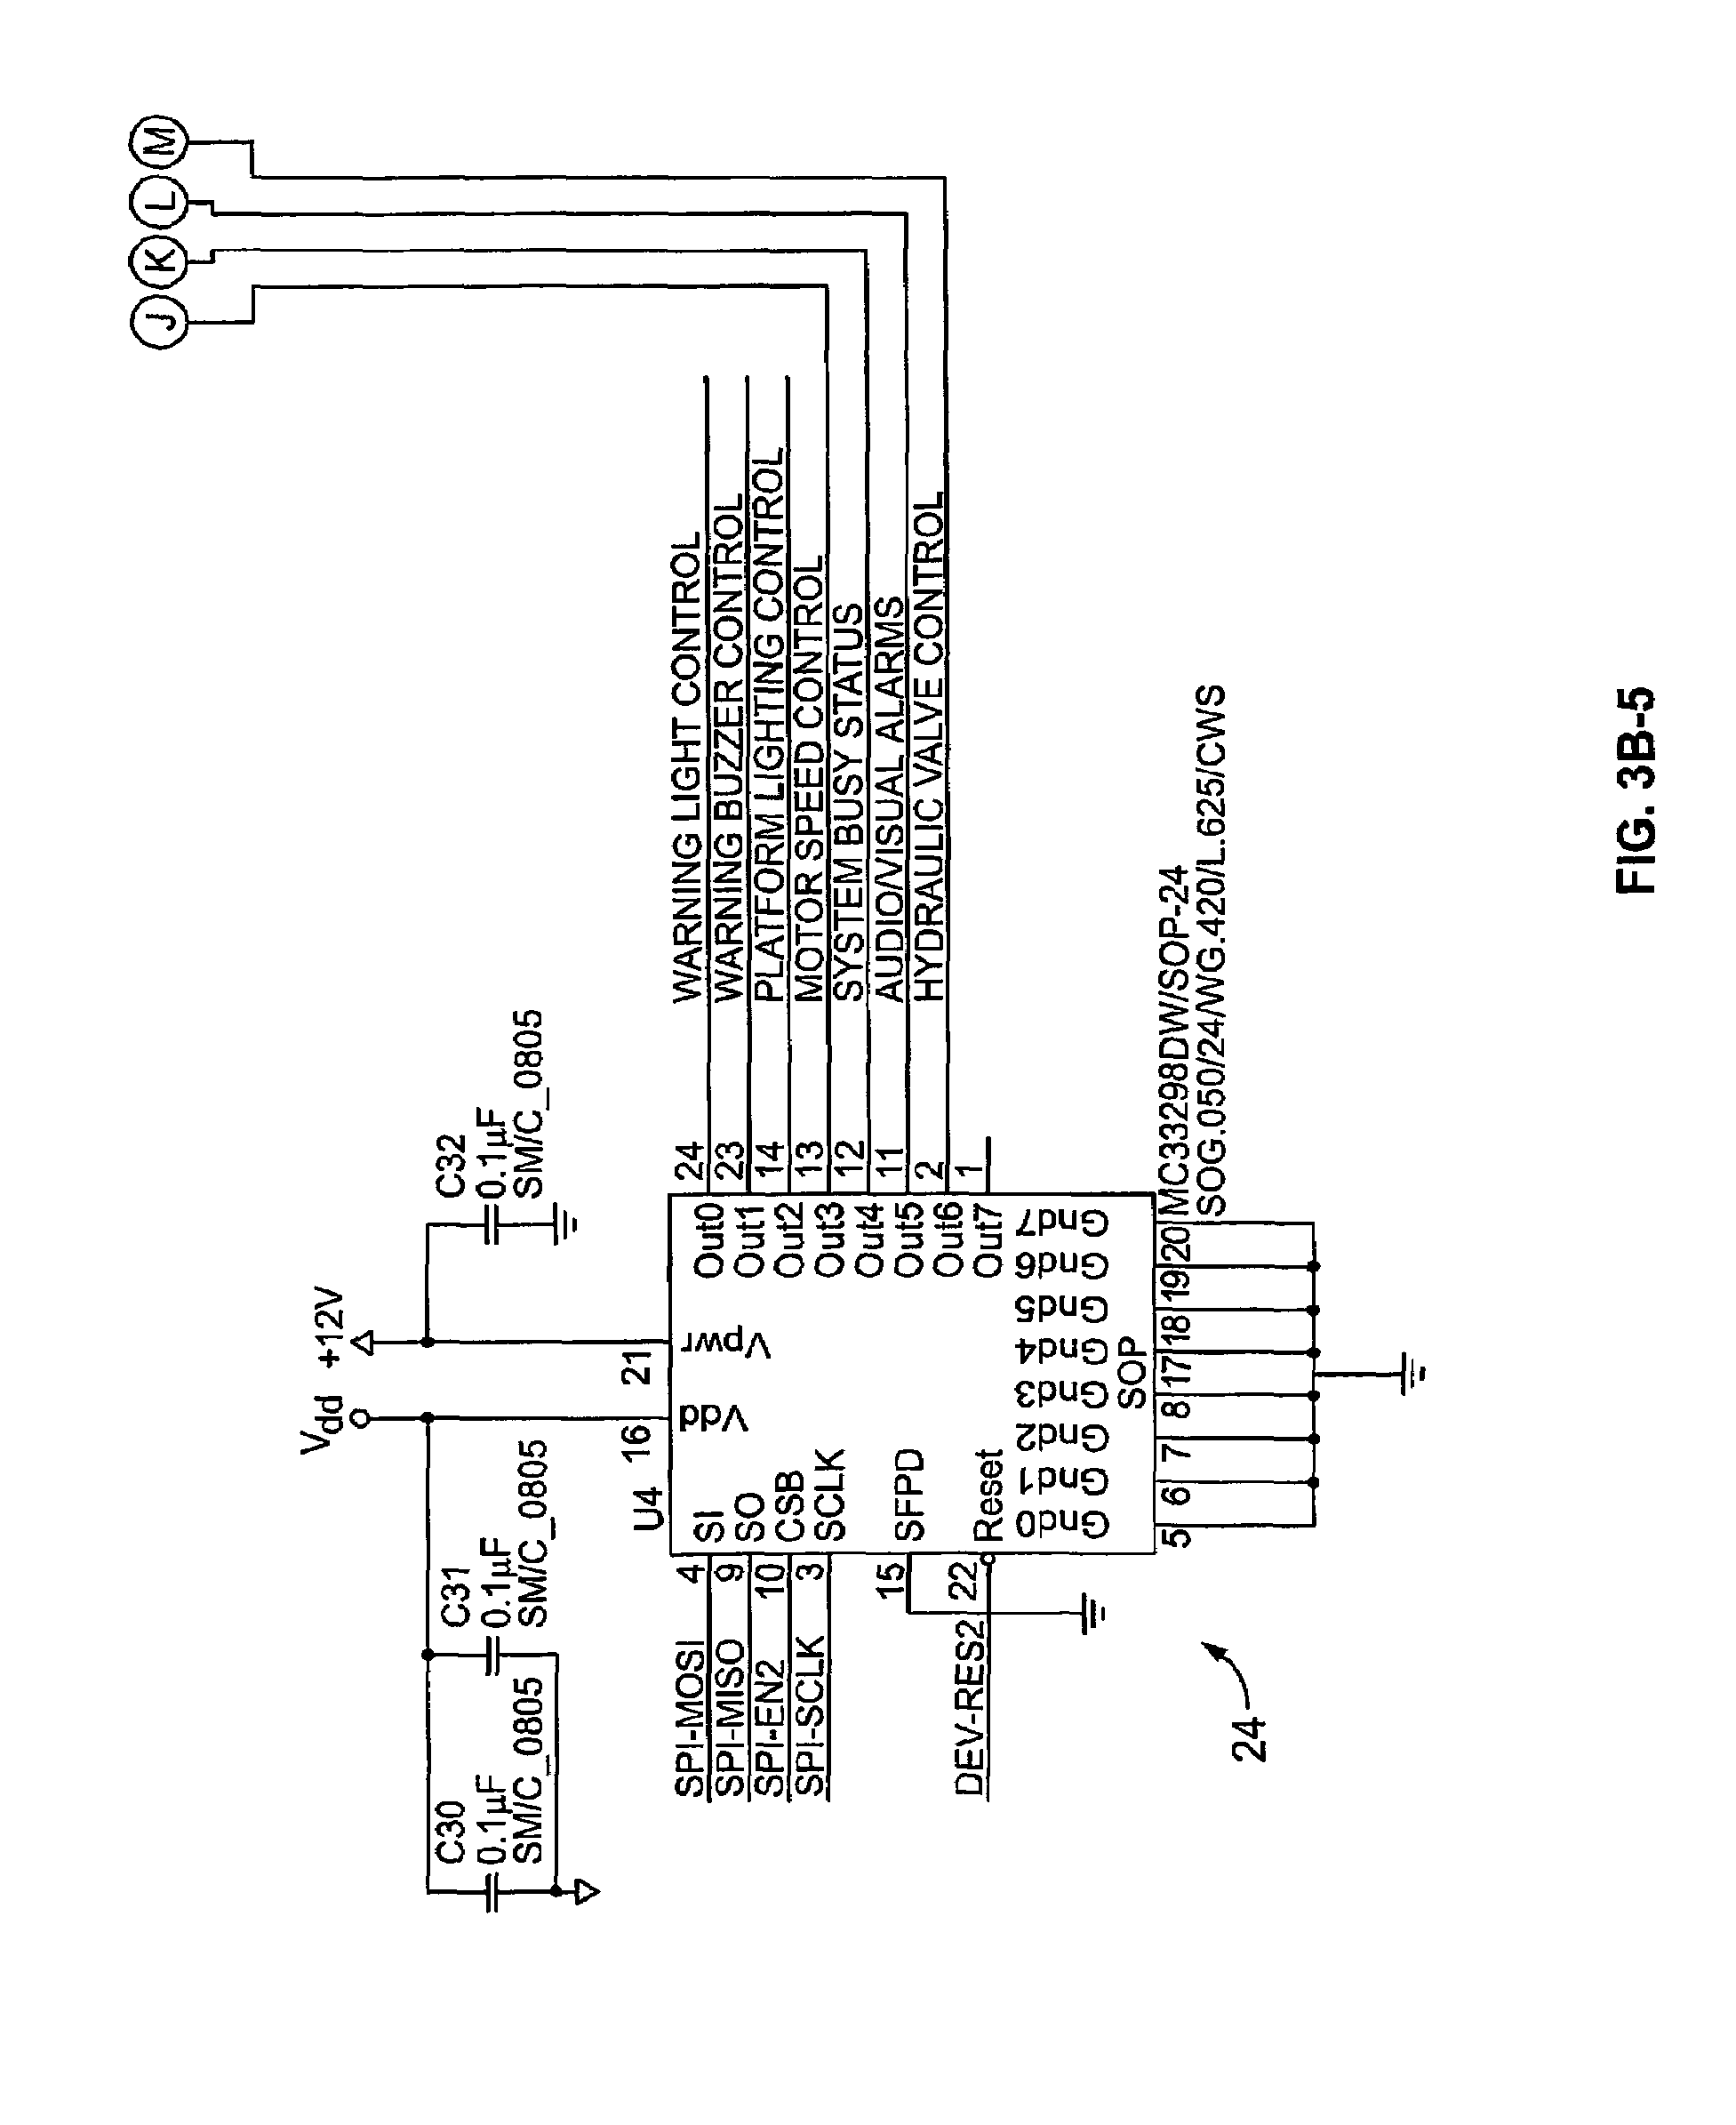 Patent US7798761 - Electronic control system and method for an ... on wheelchair lift wiring diagram, stairs diagrams, deck diagrams, shed diagrams, curb ramp diagrams, hot tub diagrams, skateboard ramp diagrams, carport diagrams, porch diagrams, diy dresser diagrams, toilet diagrams, ada ramp diagrams, homemade hovercraft diagrams, wheelchair ramps regulations, pergola diagrams,